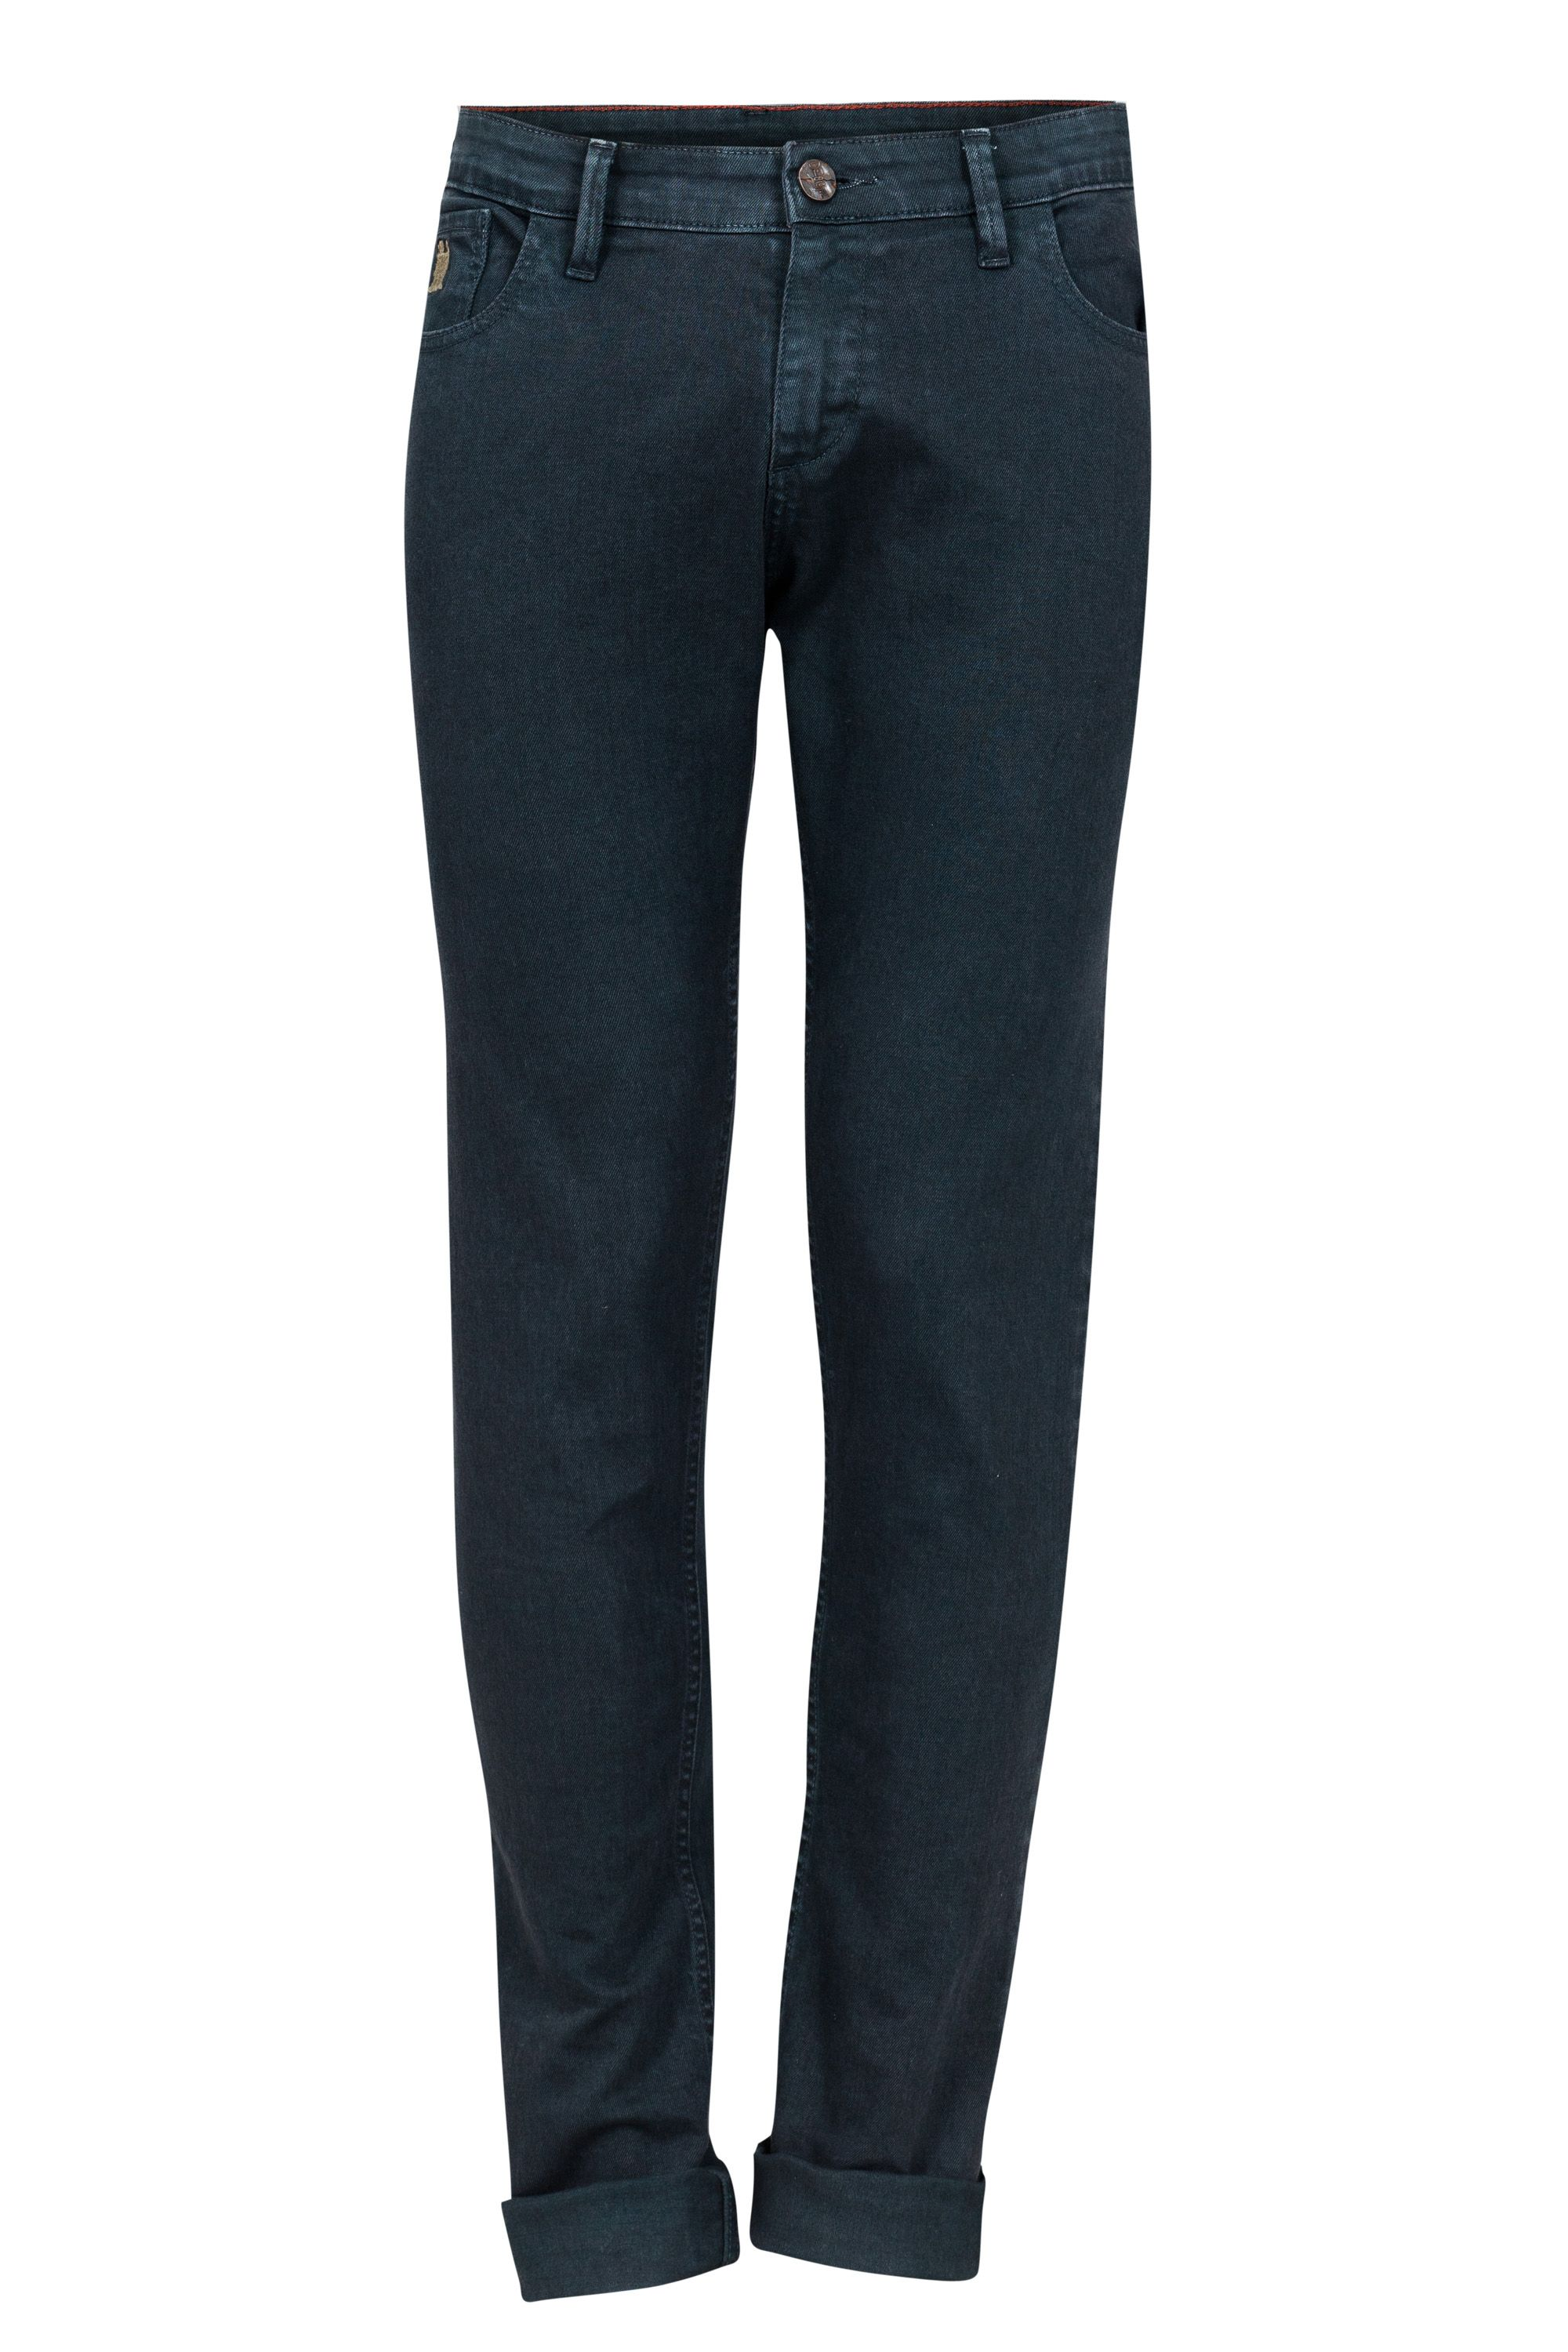 Oruro slim fit jeans